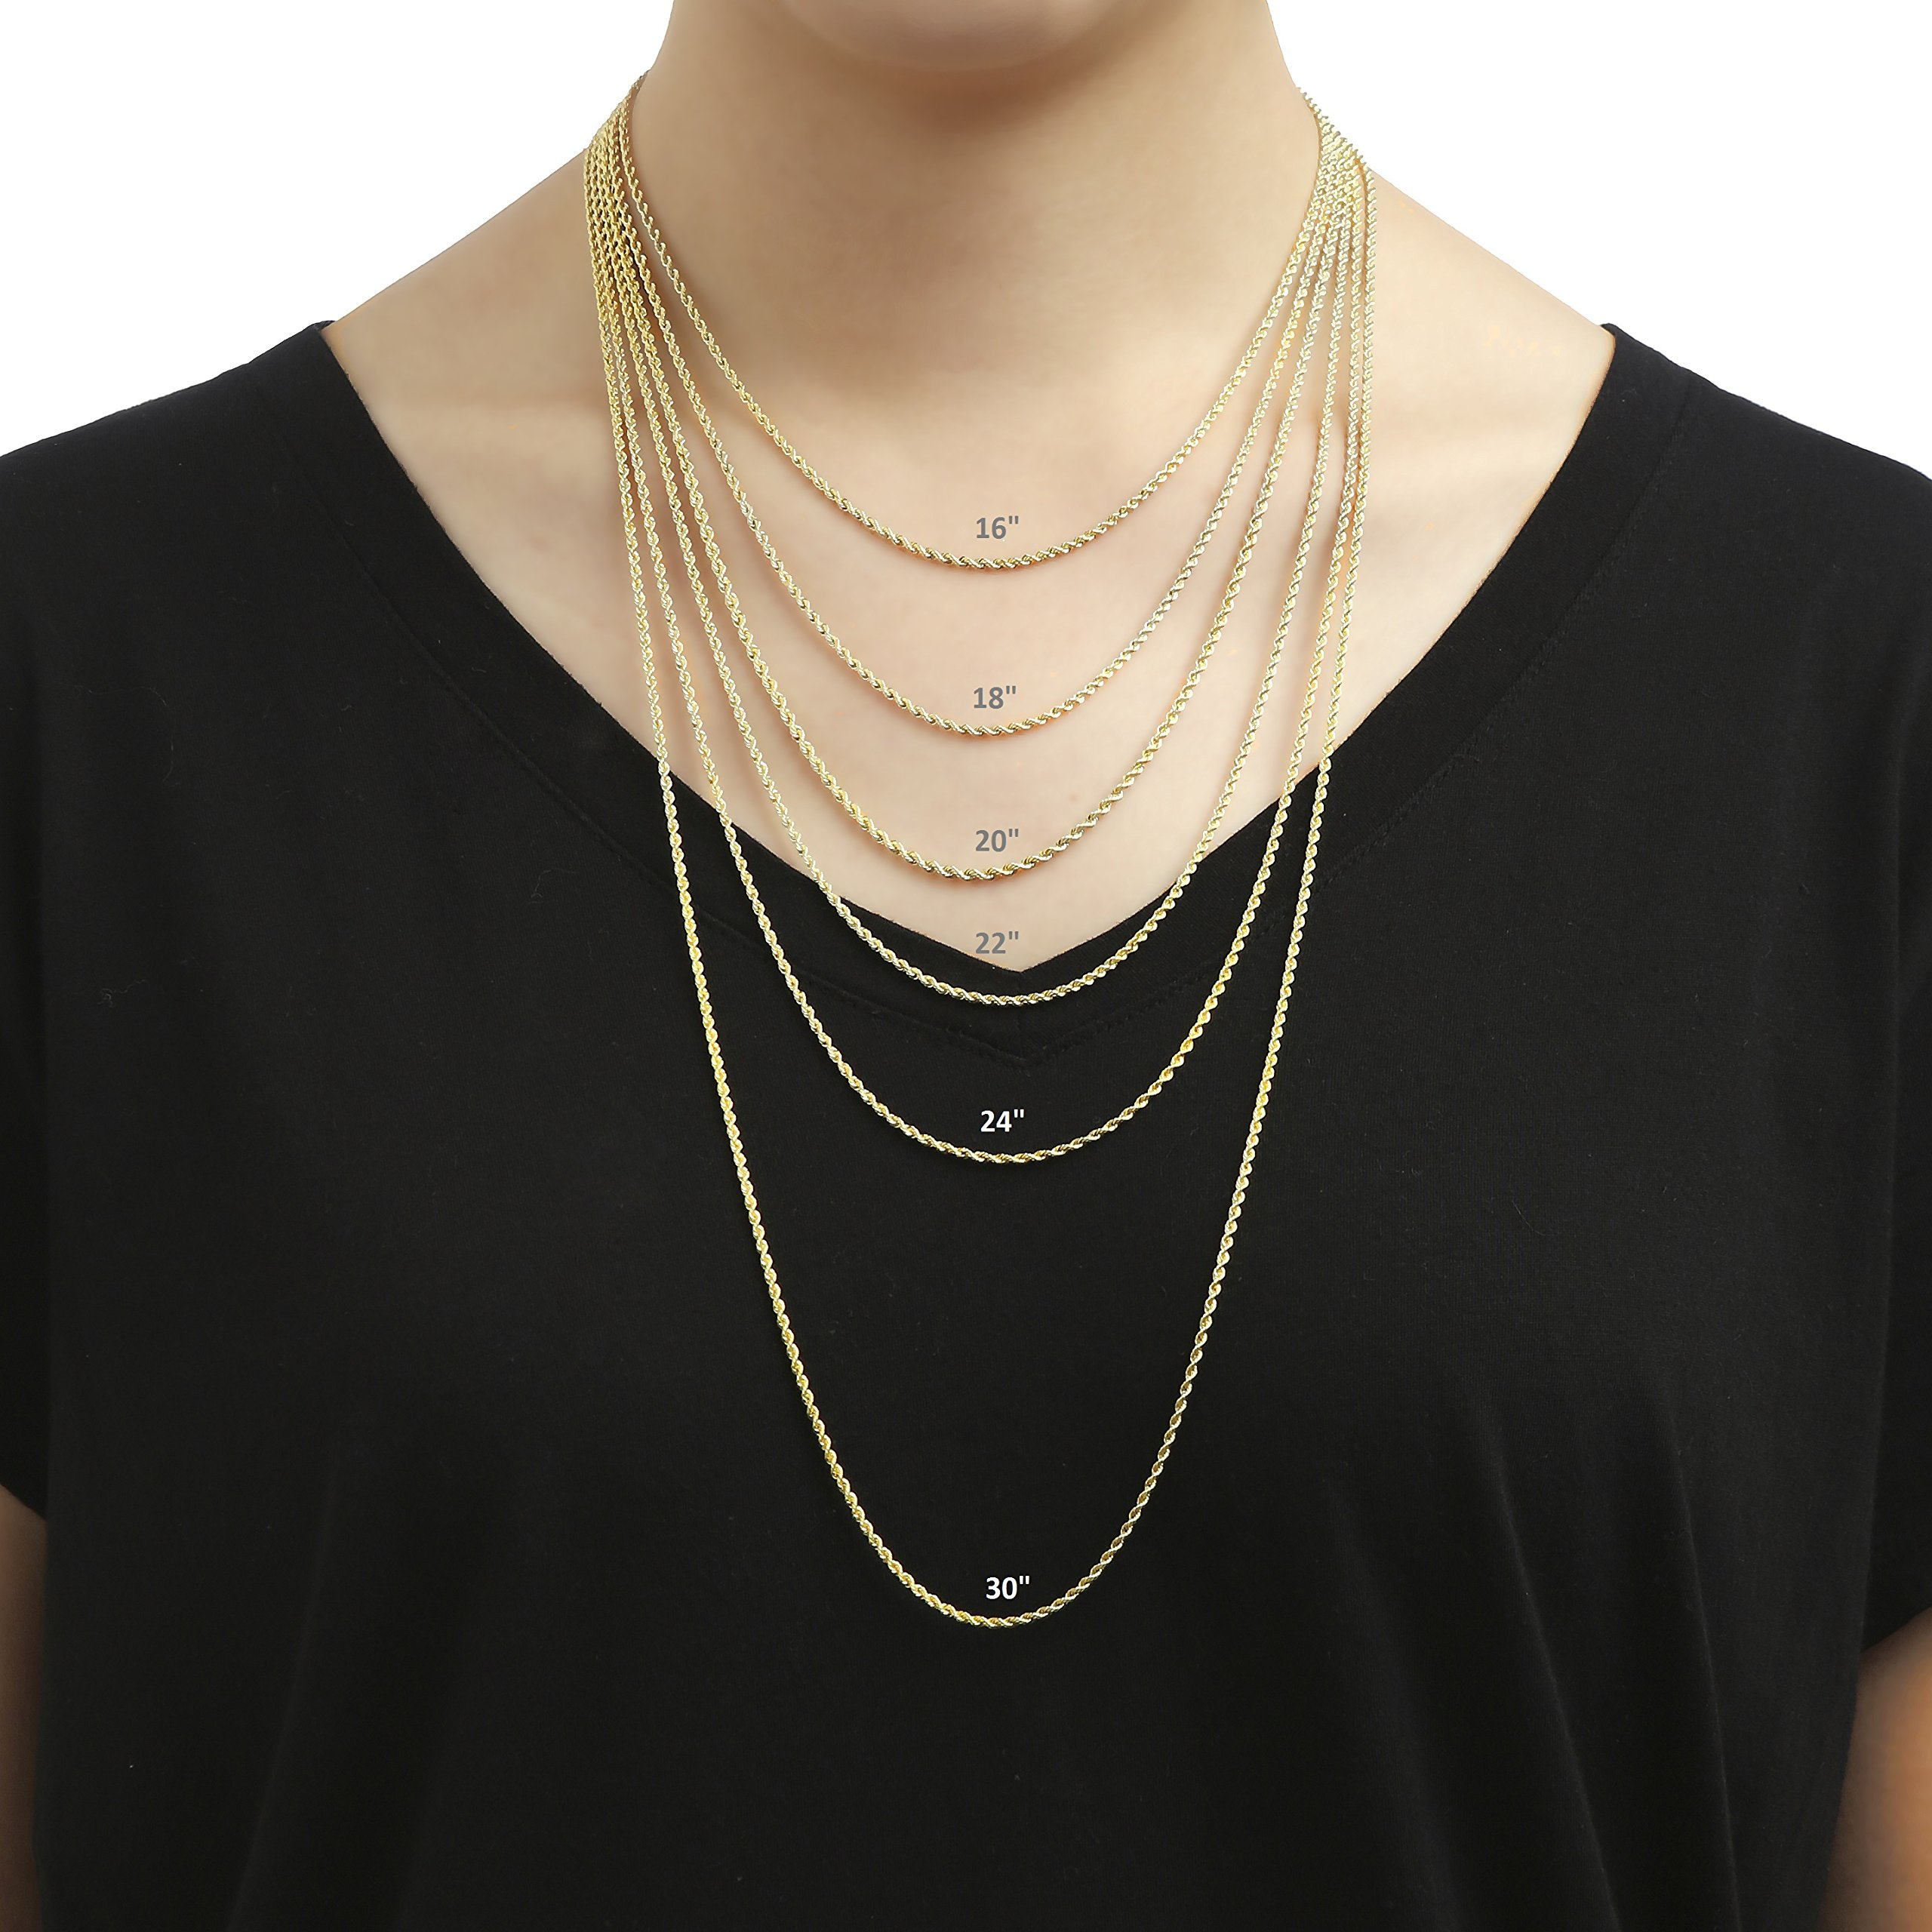 18 Inch 10k Yellow Gold Hollow Rope Chain Necklace with Lobster Claw Clasp for Women and Men, 2mm by SL Chain Collection (Image #7)